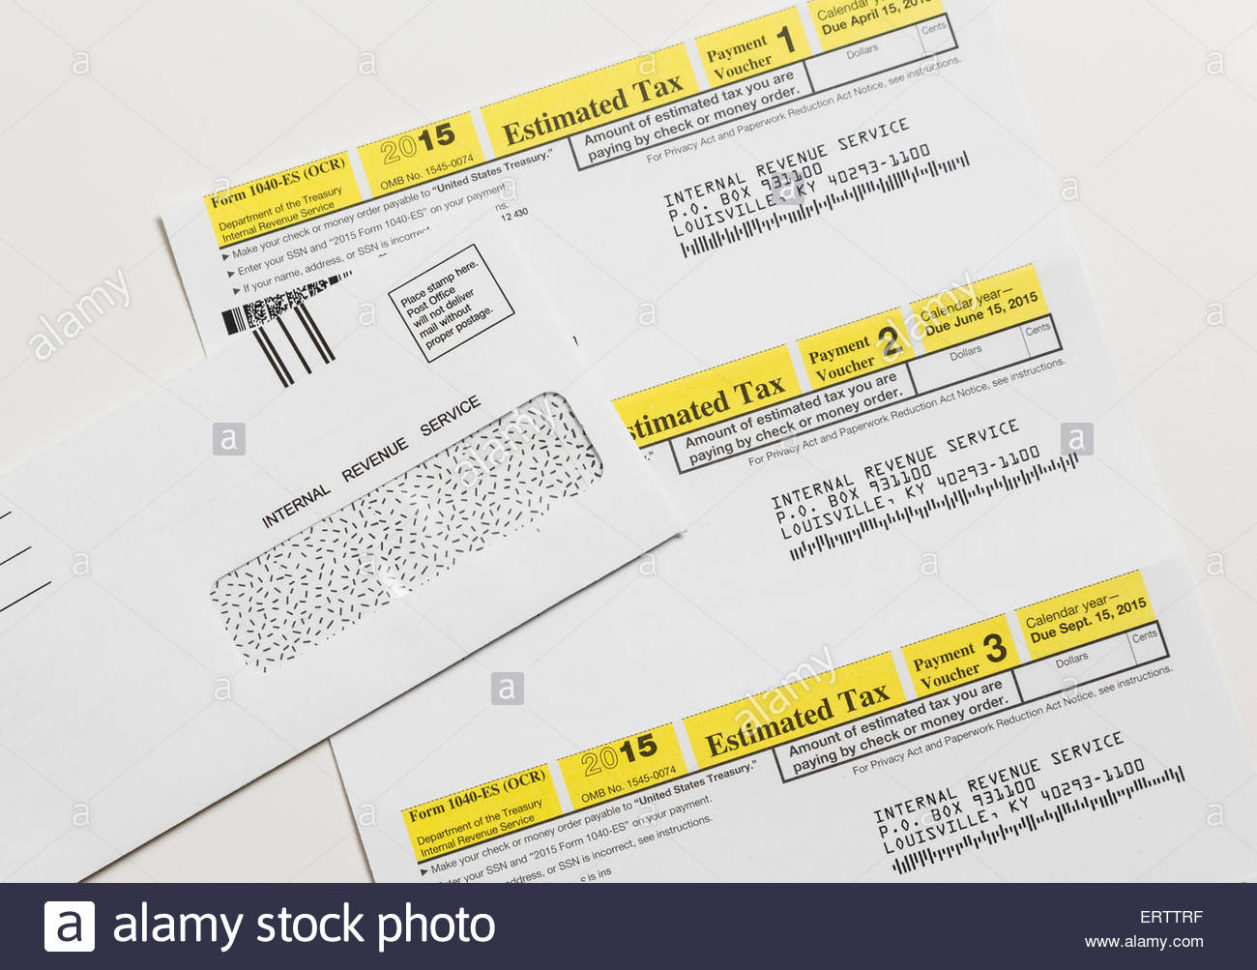 1040 Es Spreadsheet For Internal Revenue Stock Photos  Internal Revenue Stock Images  Alamy